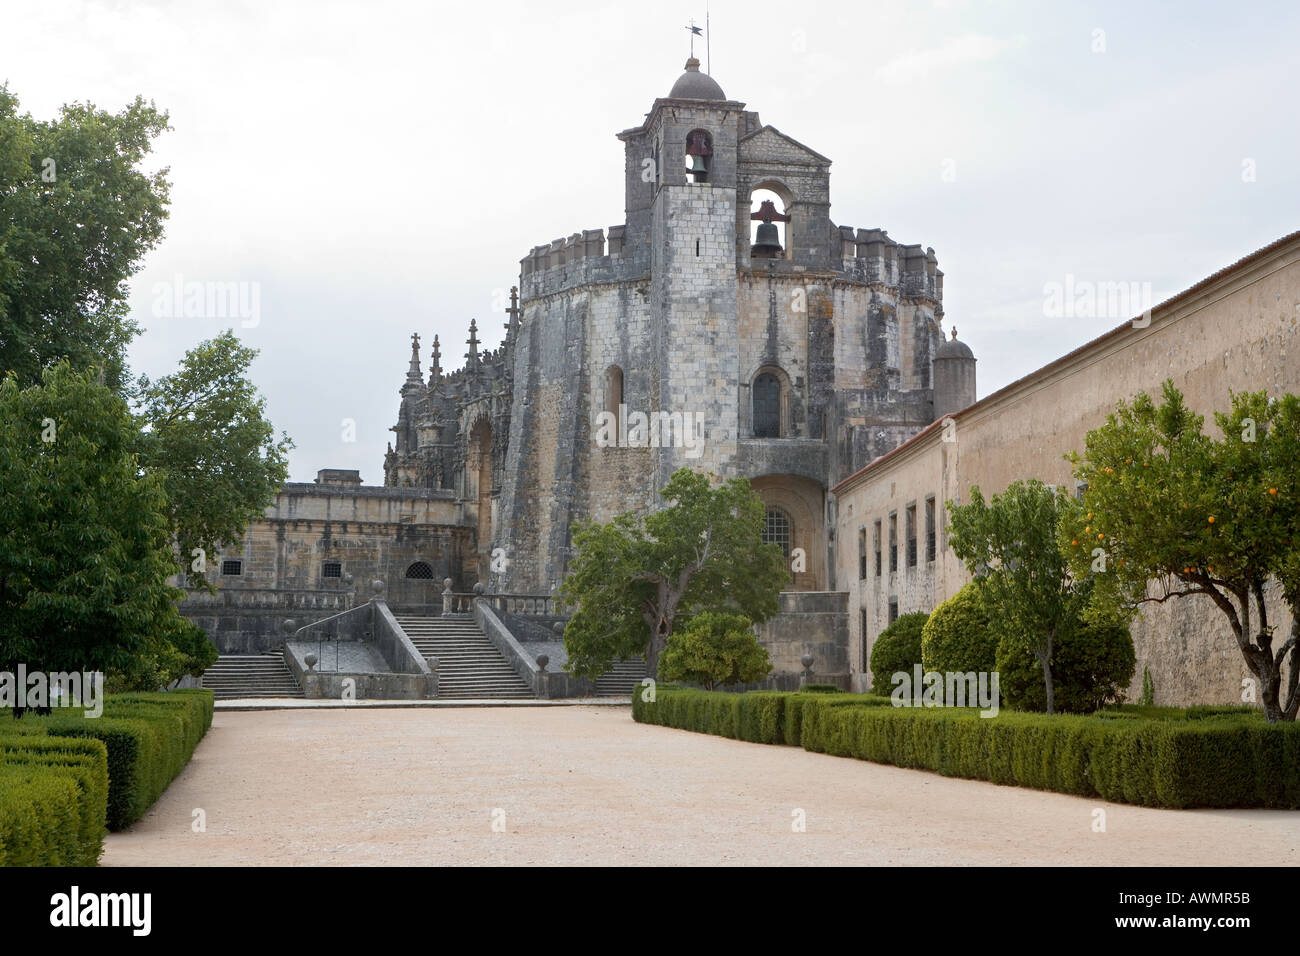 Convento de Christo or Convent of Christ once the headquarters of The Order of the Knights Templar. - Stock Image